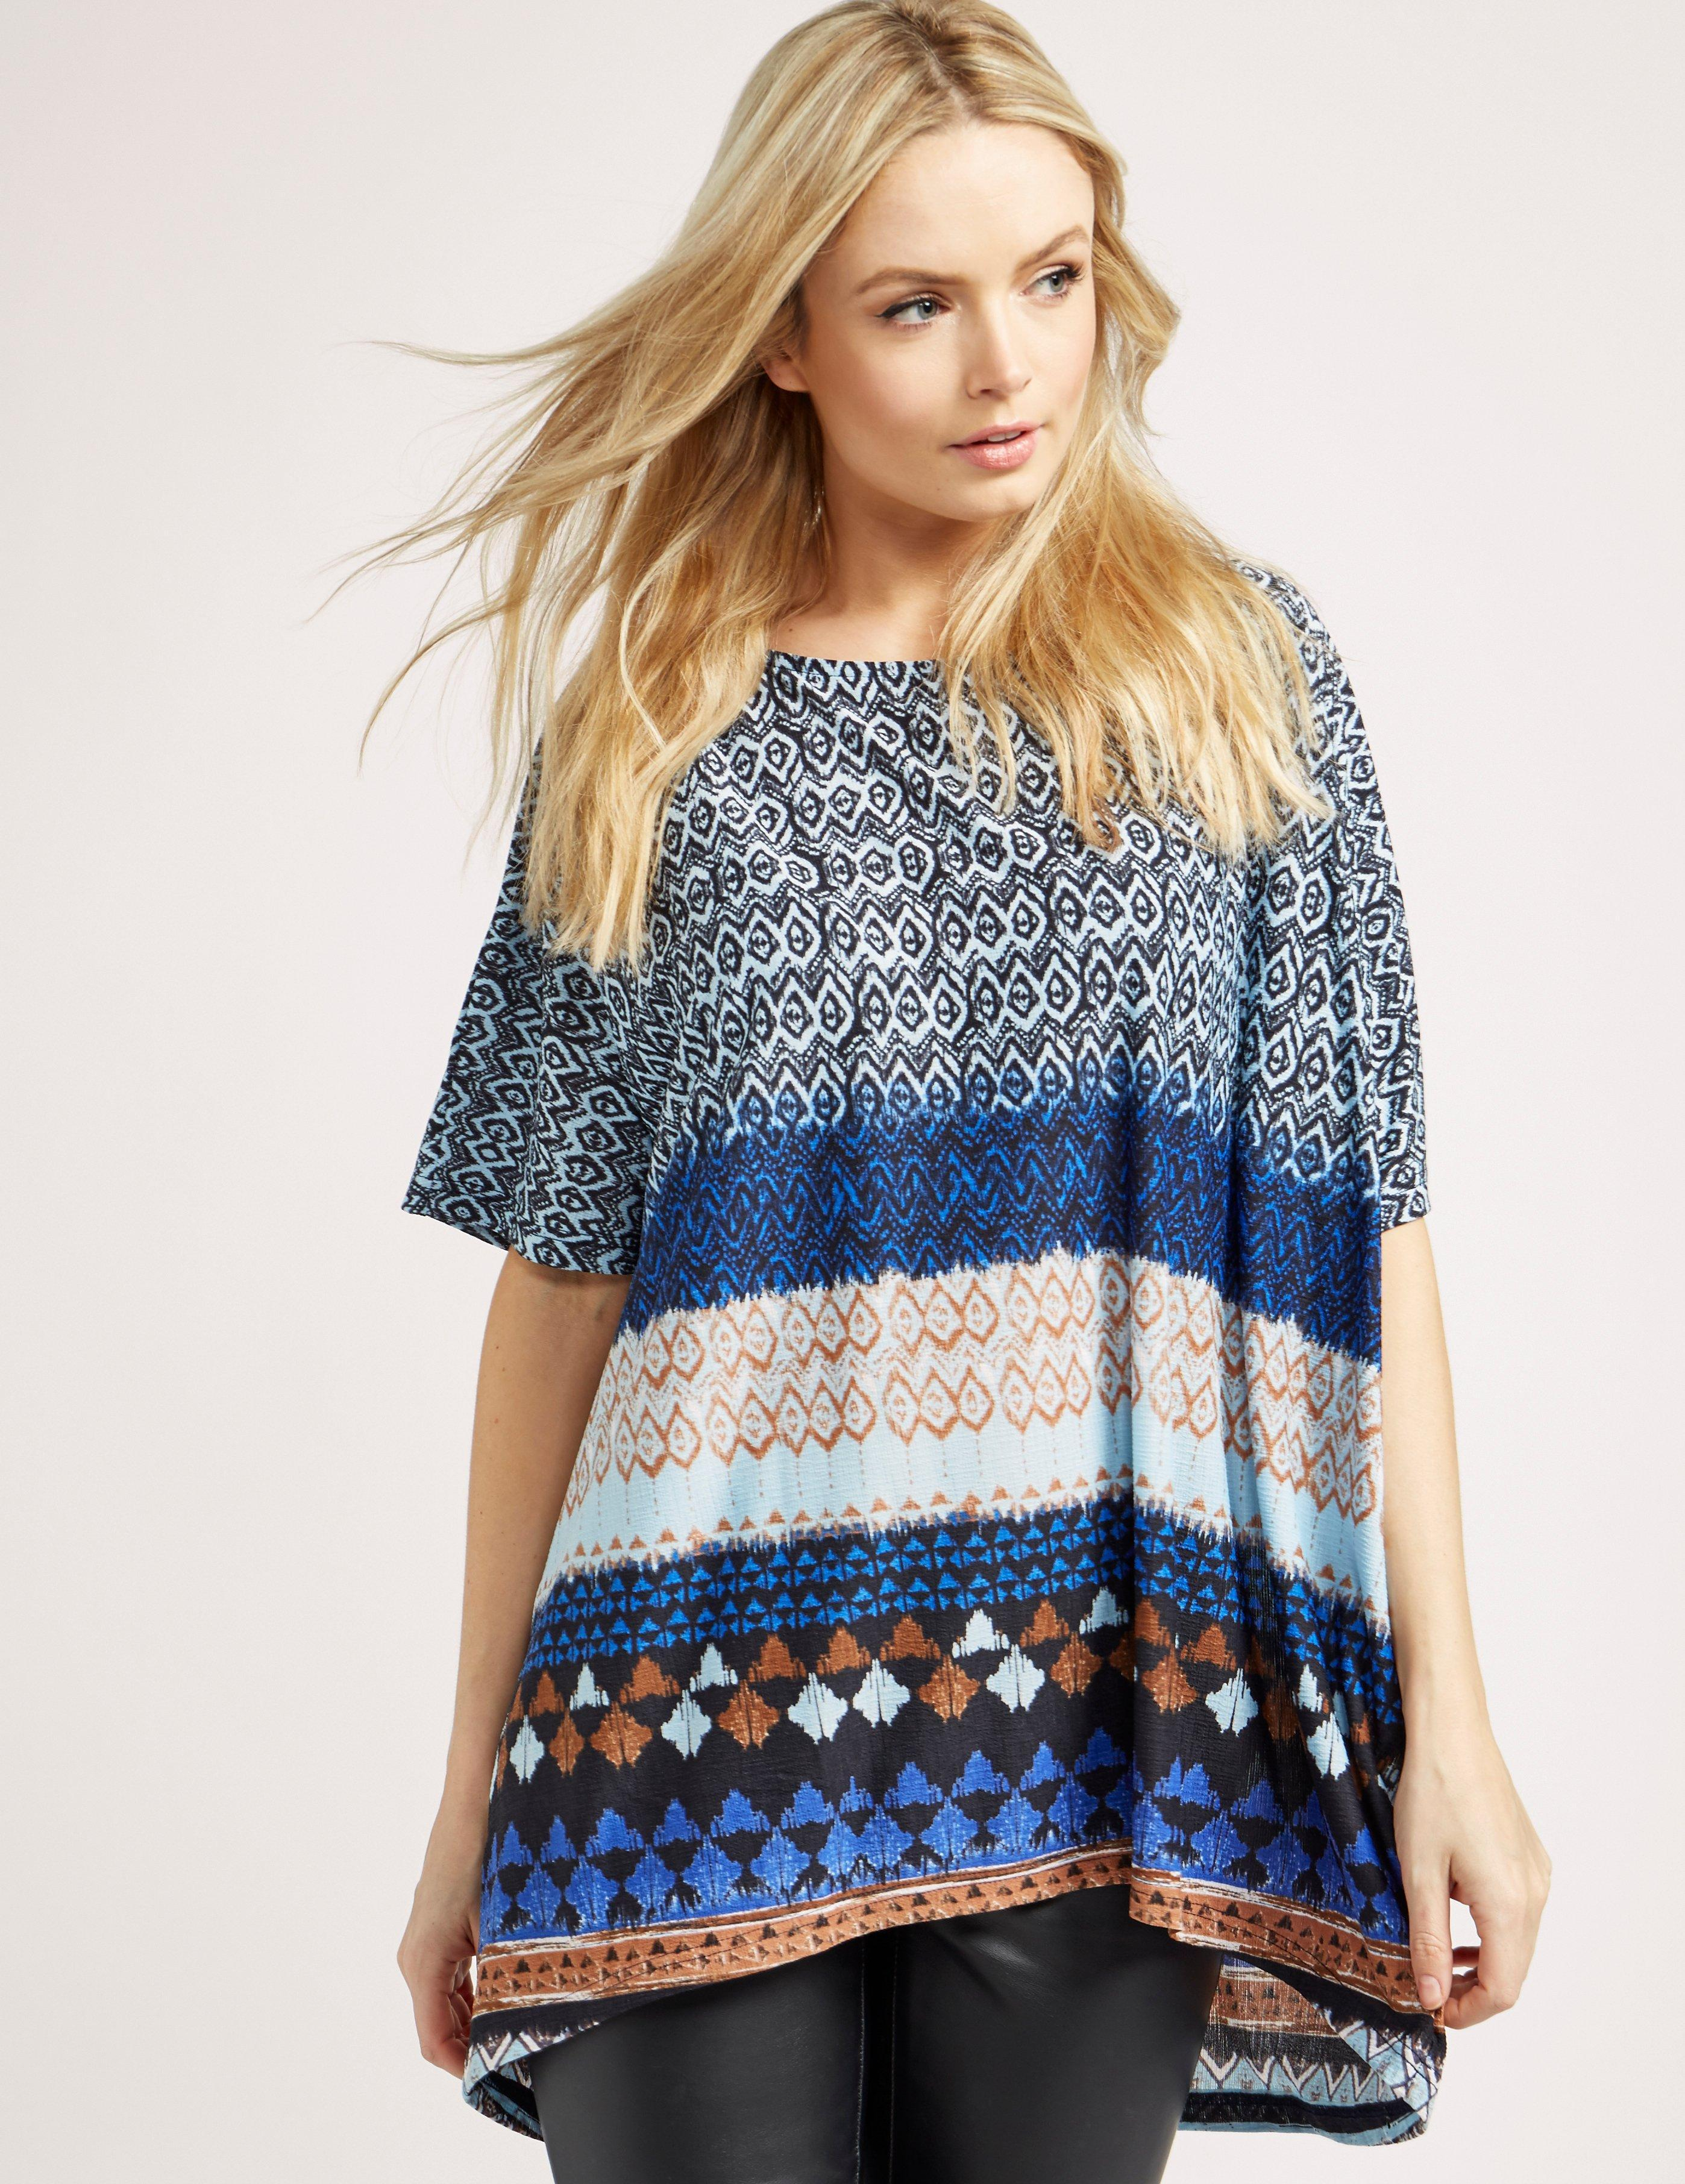 8aba2545edc0 Ilse Jacobsen Wika Top Blue in Blue - Save 14% - Lyst